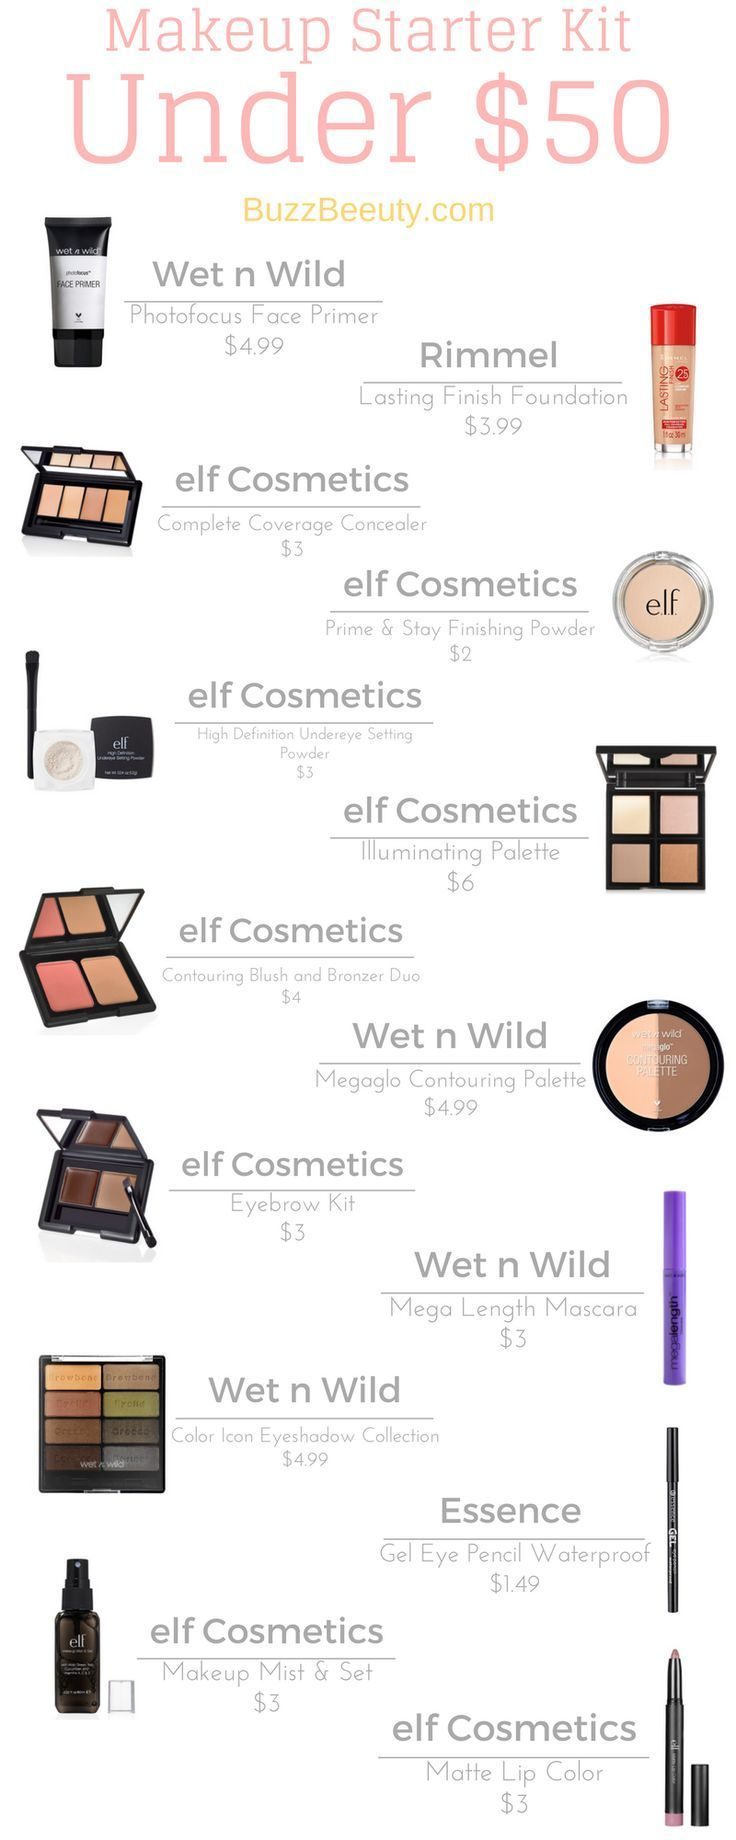 Makeup Kits On a Budget Starter Kits Under 50 and 100